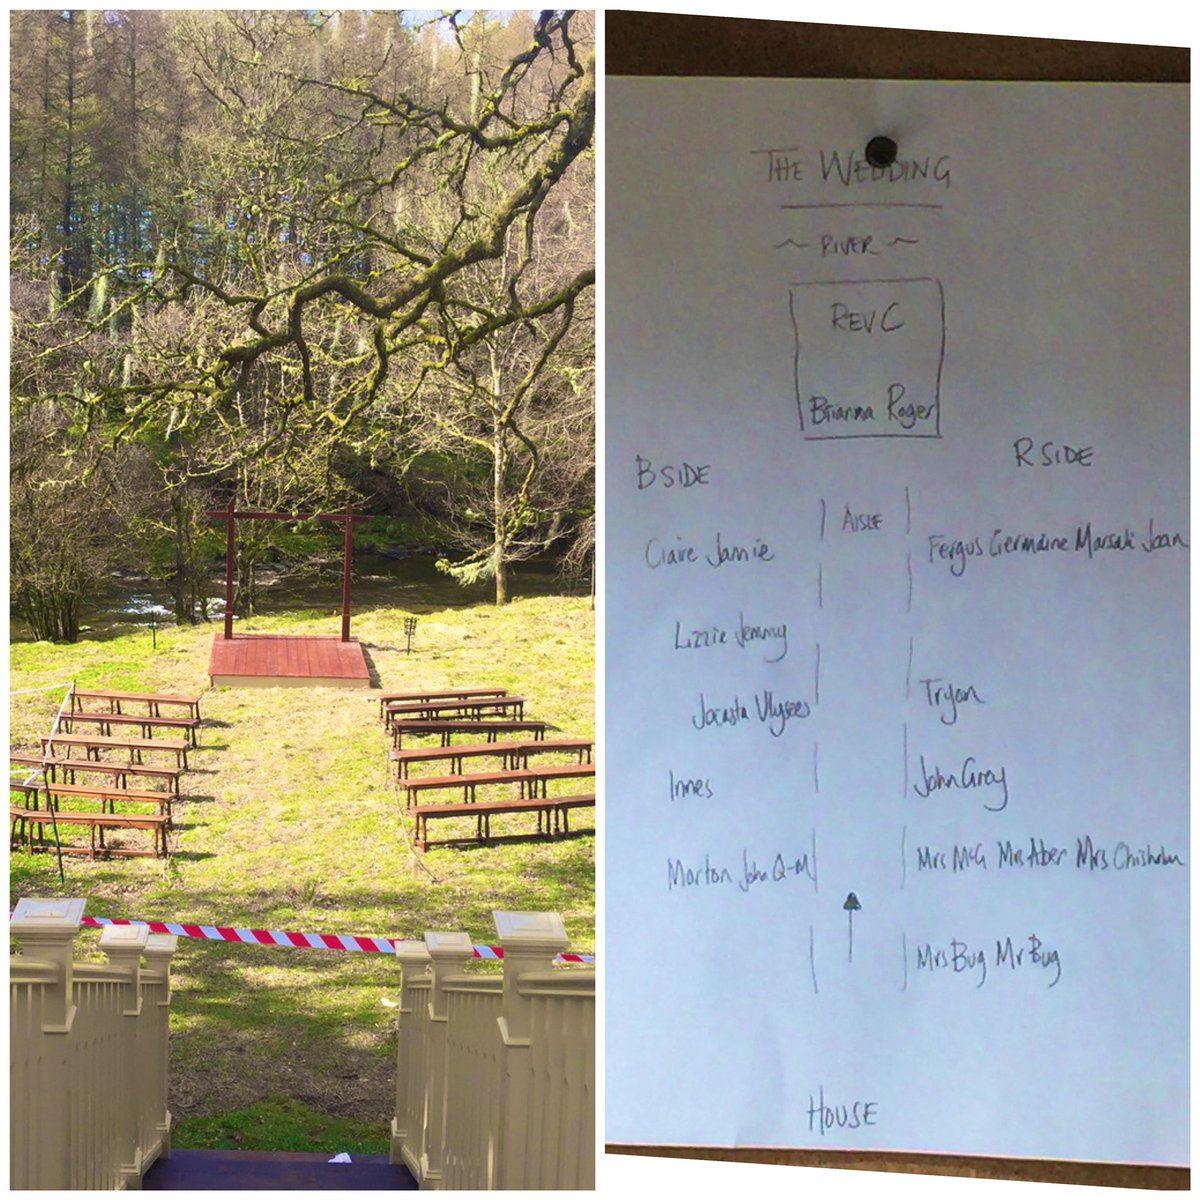 Almost a year ago - 1st rough seating plan for the wedding of the year, 1771. ❤️🎬🎥🏴🎂☀️ #Outlander #OutlanderS5 #weddingplanner